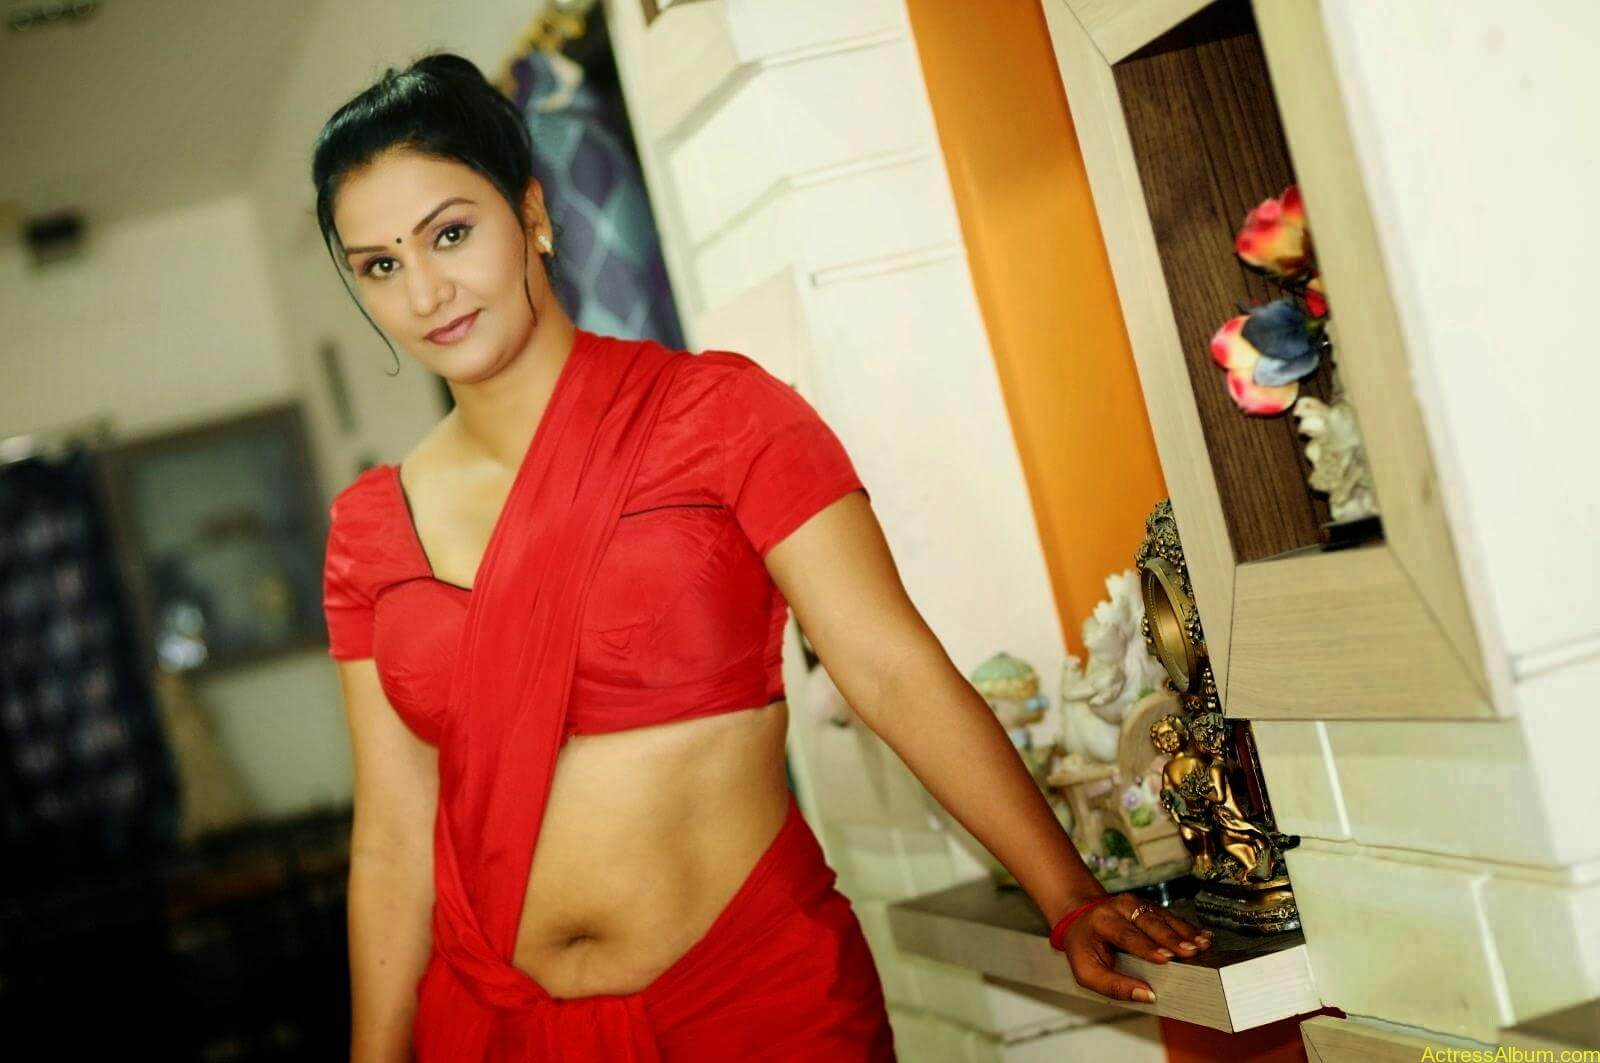 ACTRESS APOORVA VERY HOT IN RED SAREE PHOTO COLLECTION